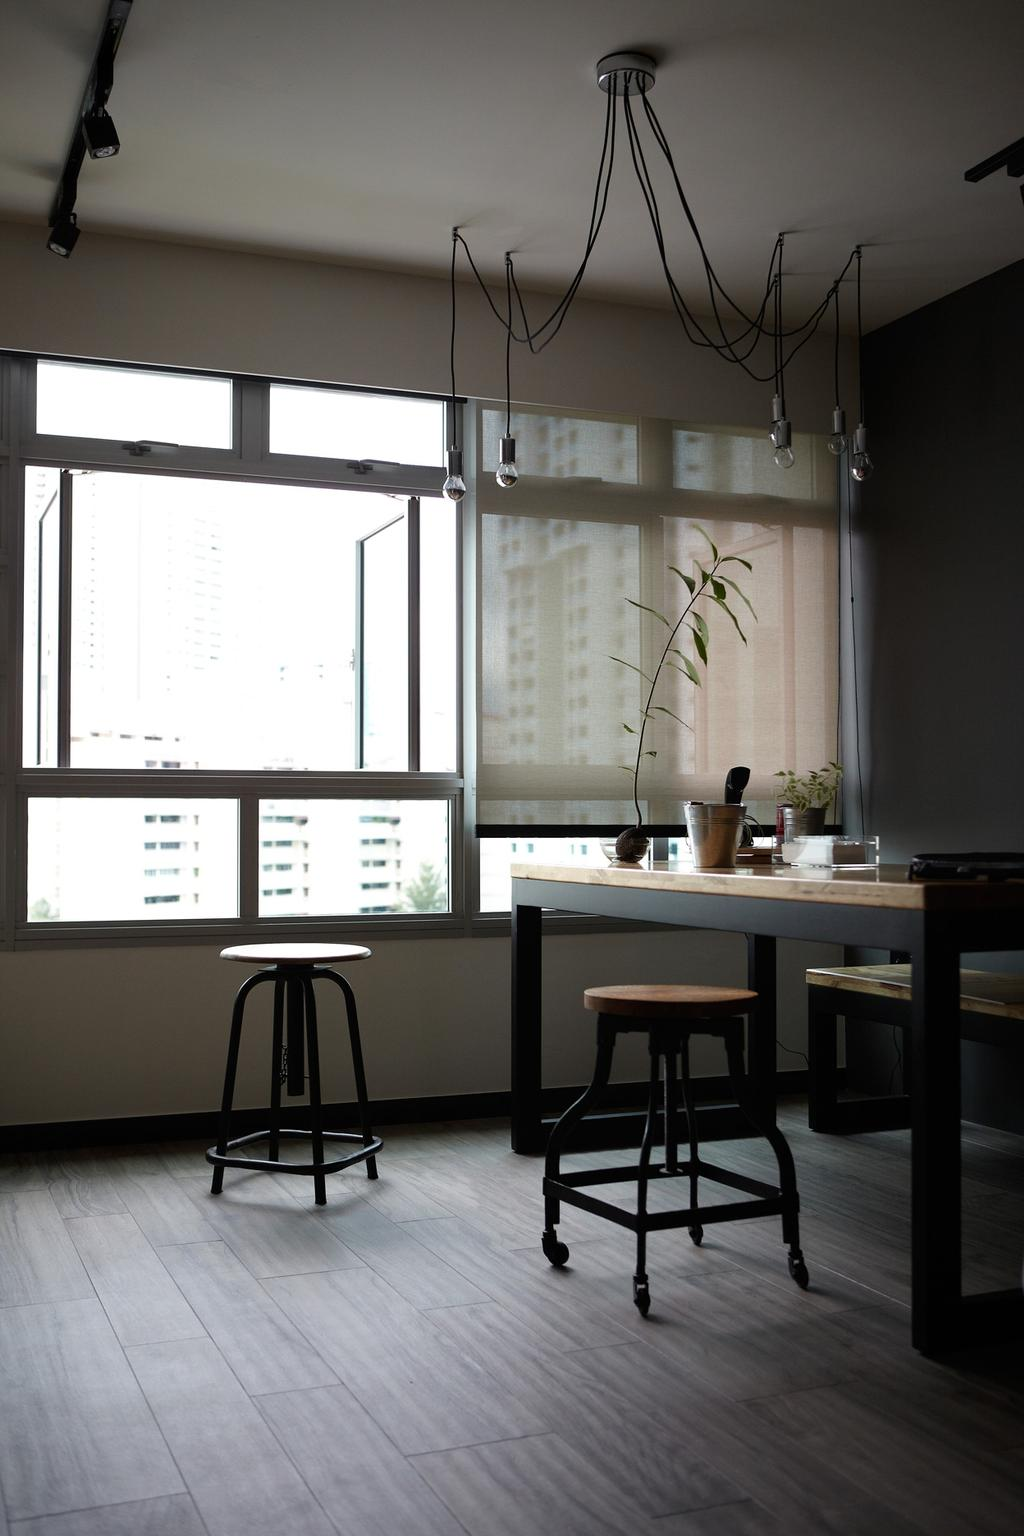 Scandinavian, HDB, Dining Room, Ghim Moh Link, Interior Designer, Free Space Intent, Exposed Lightbulb, Hanging Light, Stool, Parquet Flooring, Wooden Flooring, Flora, Jar, Plant, Potted Plant, Pottery, Vase, Bar Stool, Furniture, Dining Table, Table, White Board